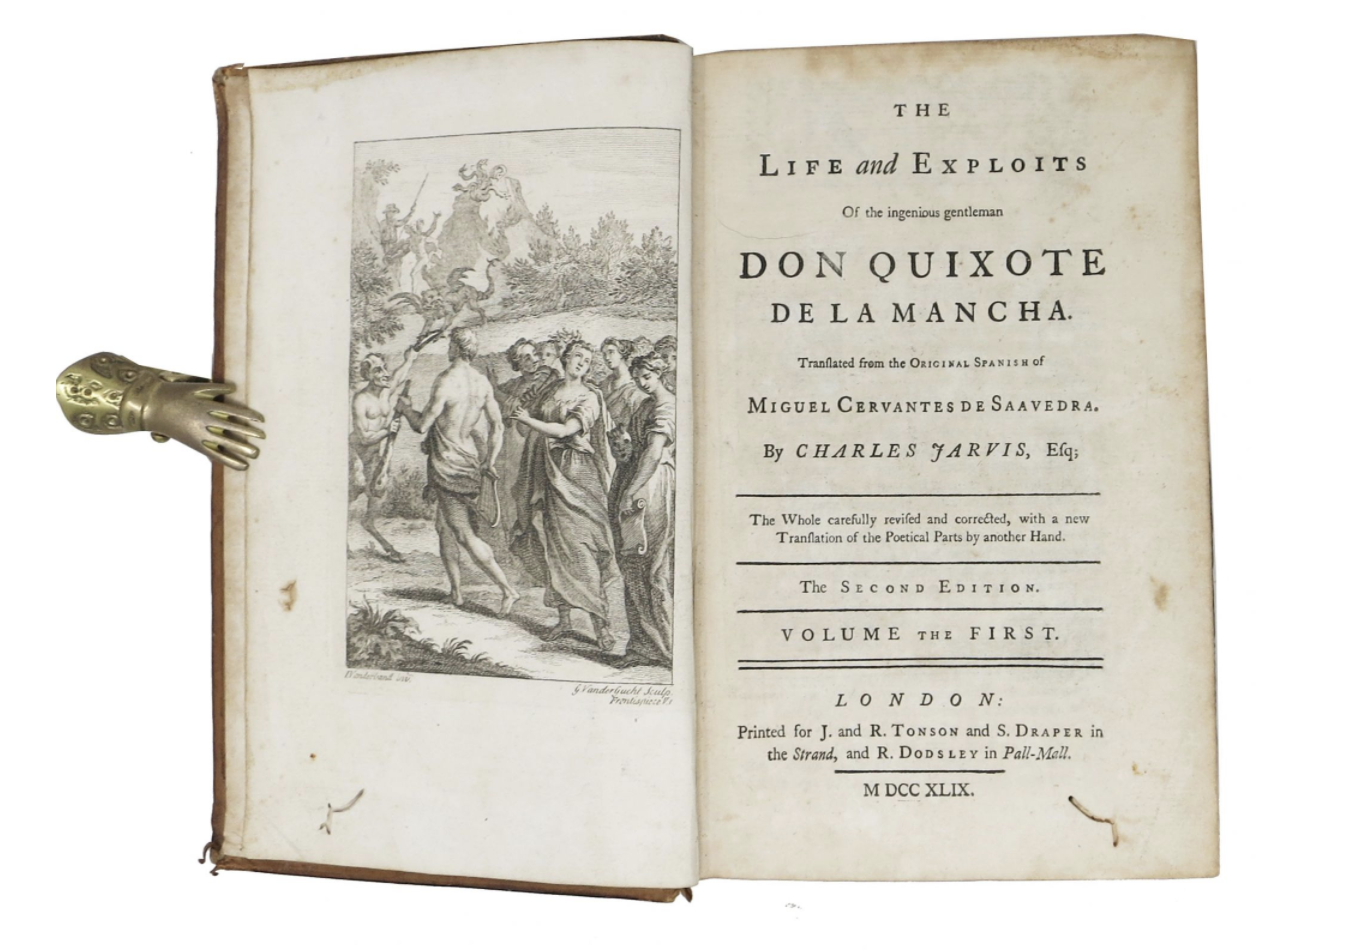 Our London 1749 holding of Don Quixote, published into the English by Charles Jarvis and only the 2nd edition of its kind!